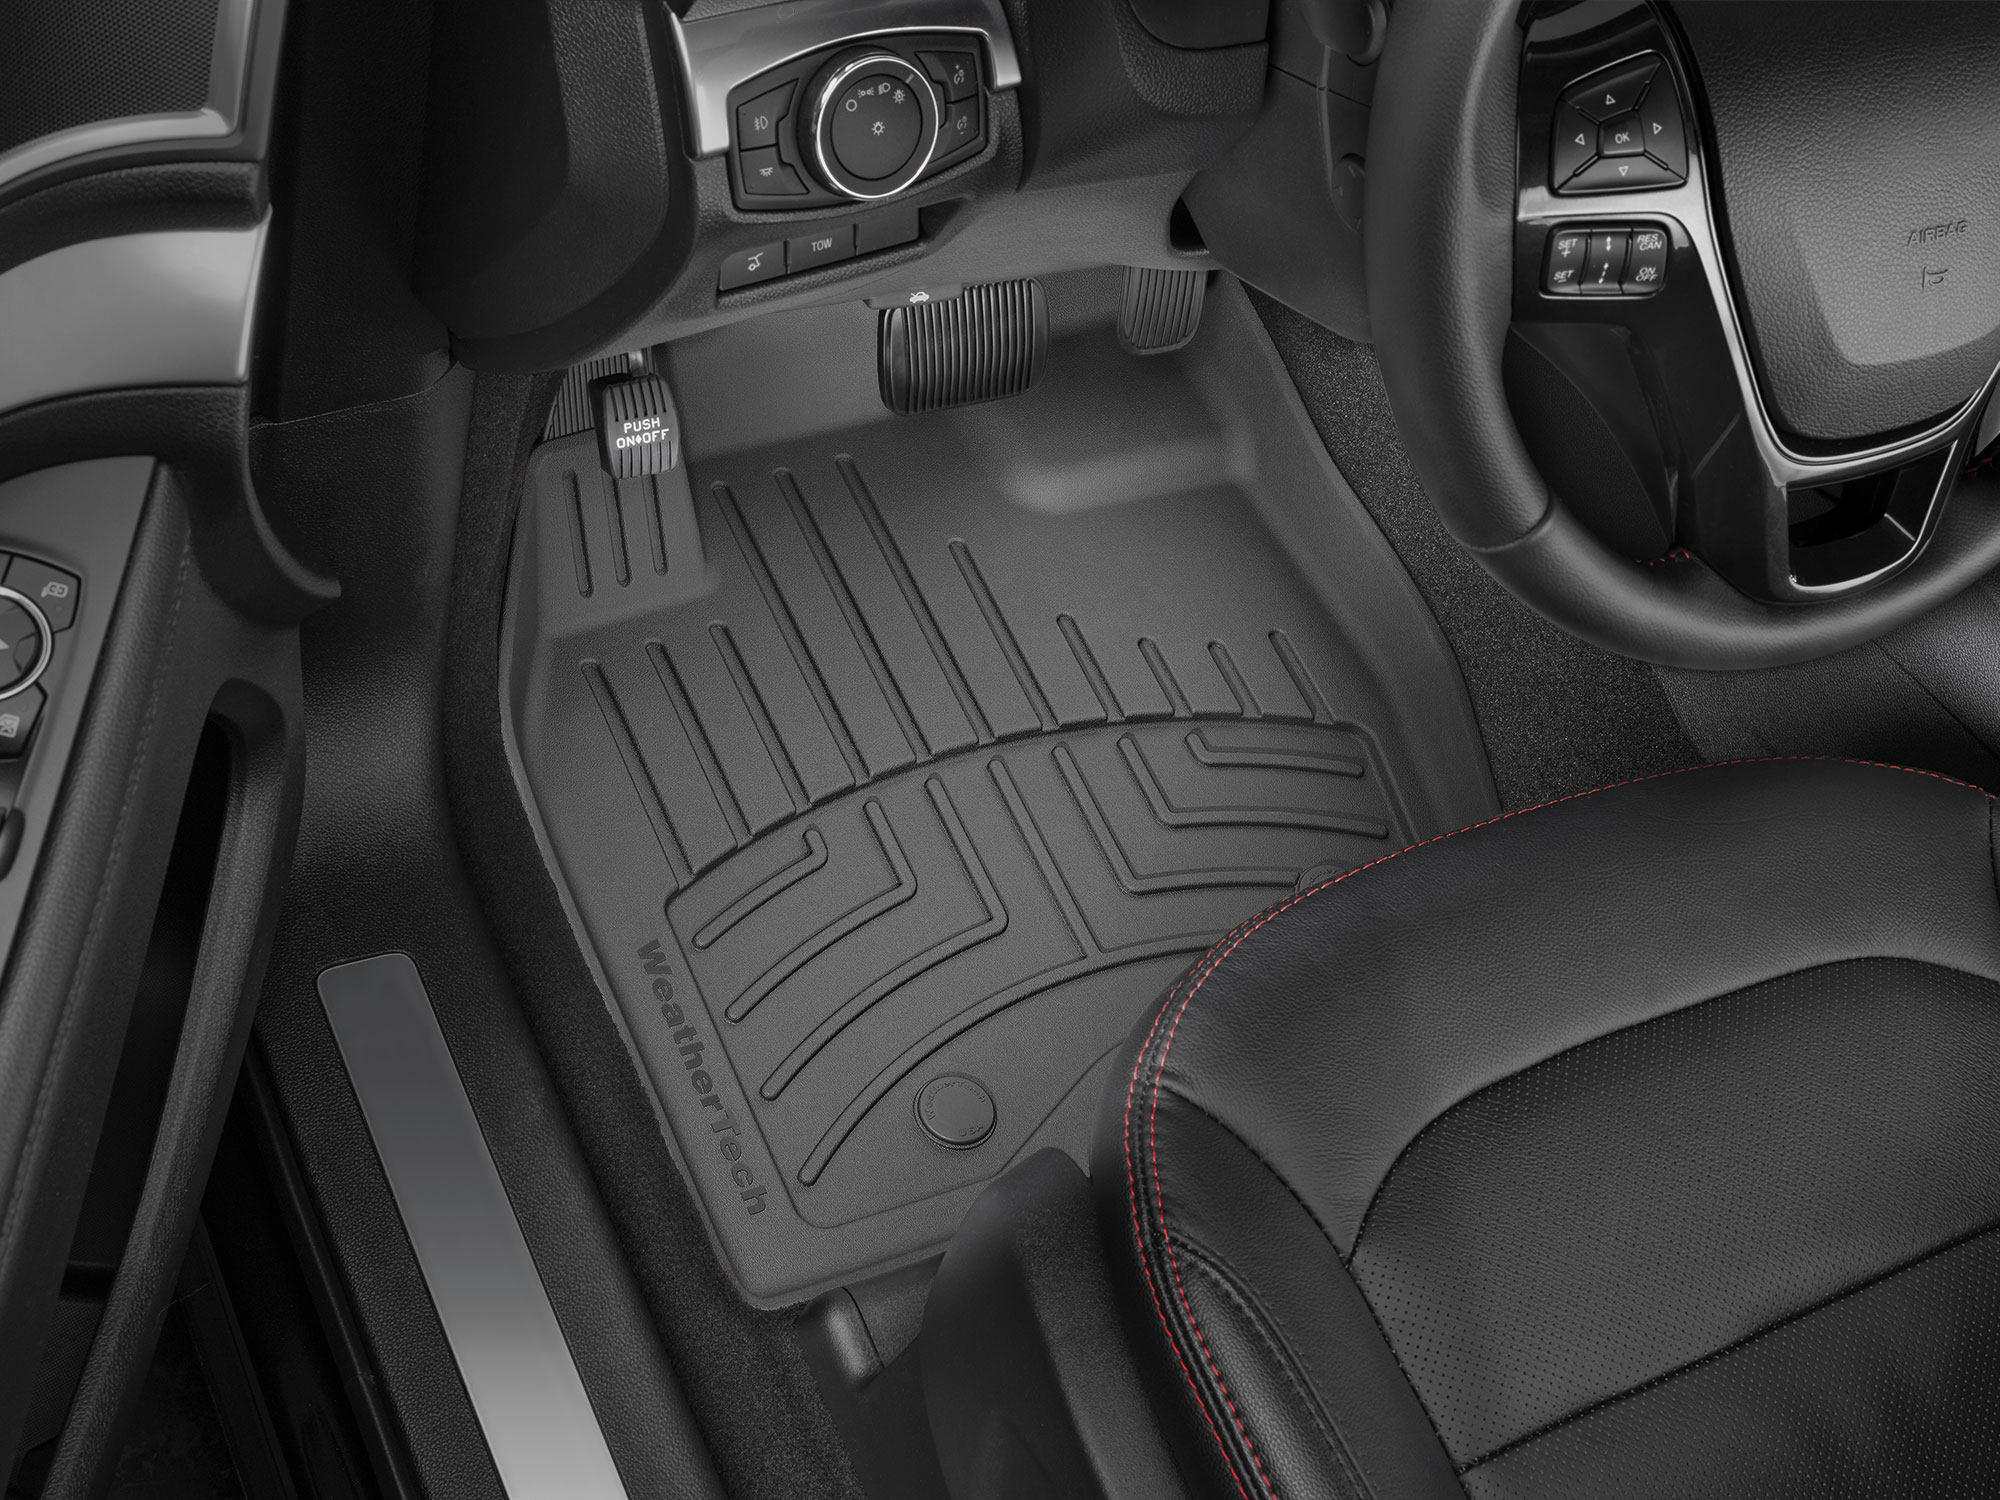 The Next Generation of WeatherTech Auto Floor Mat Protection